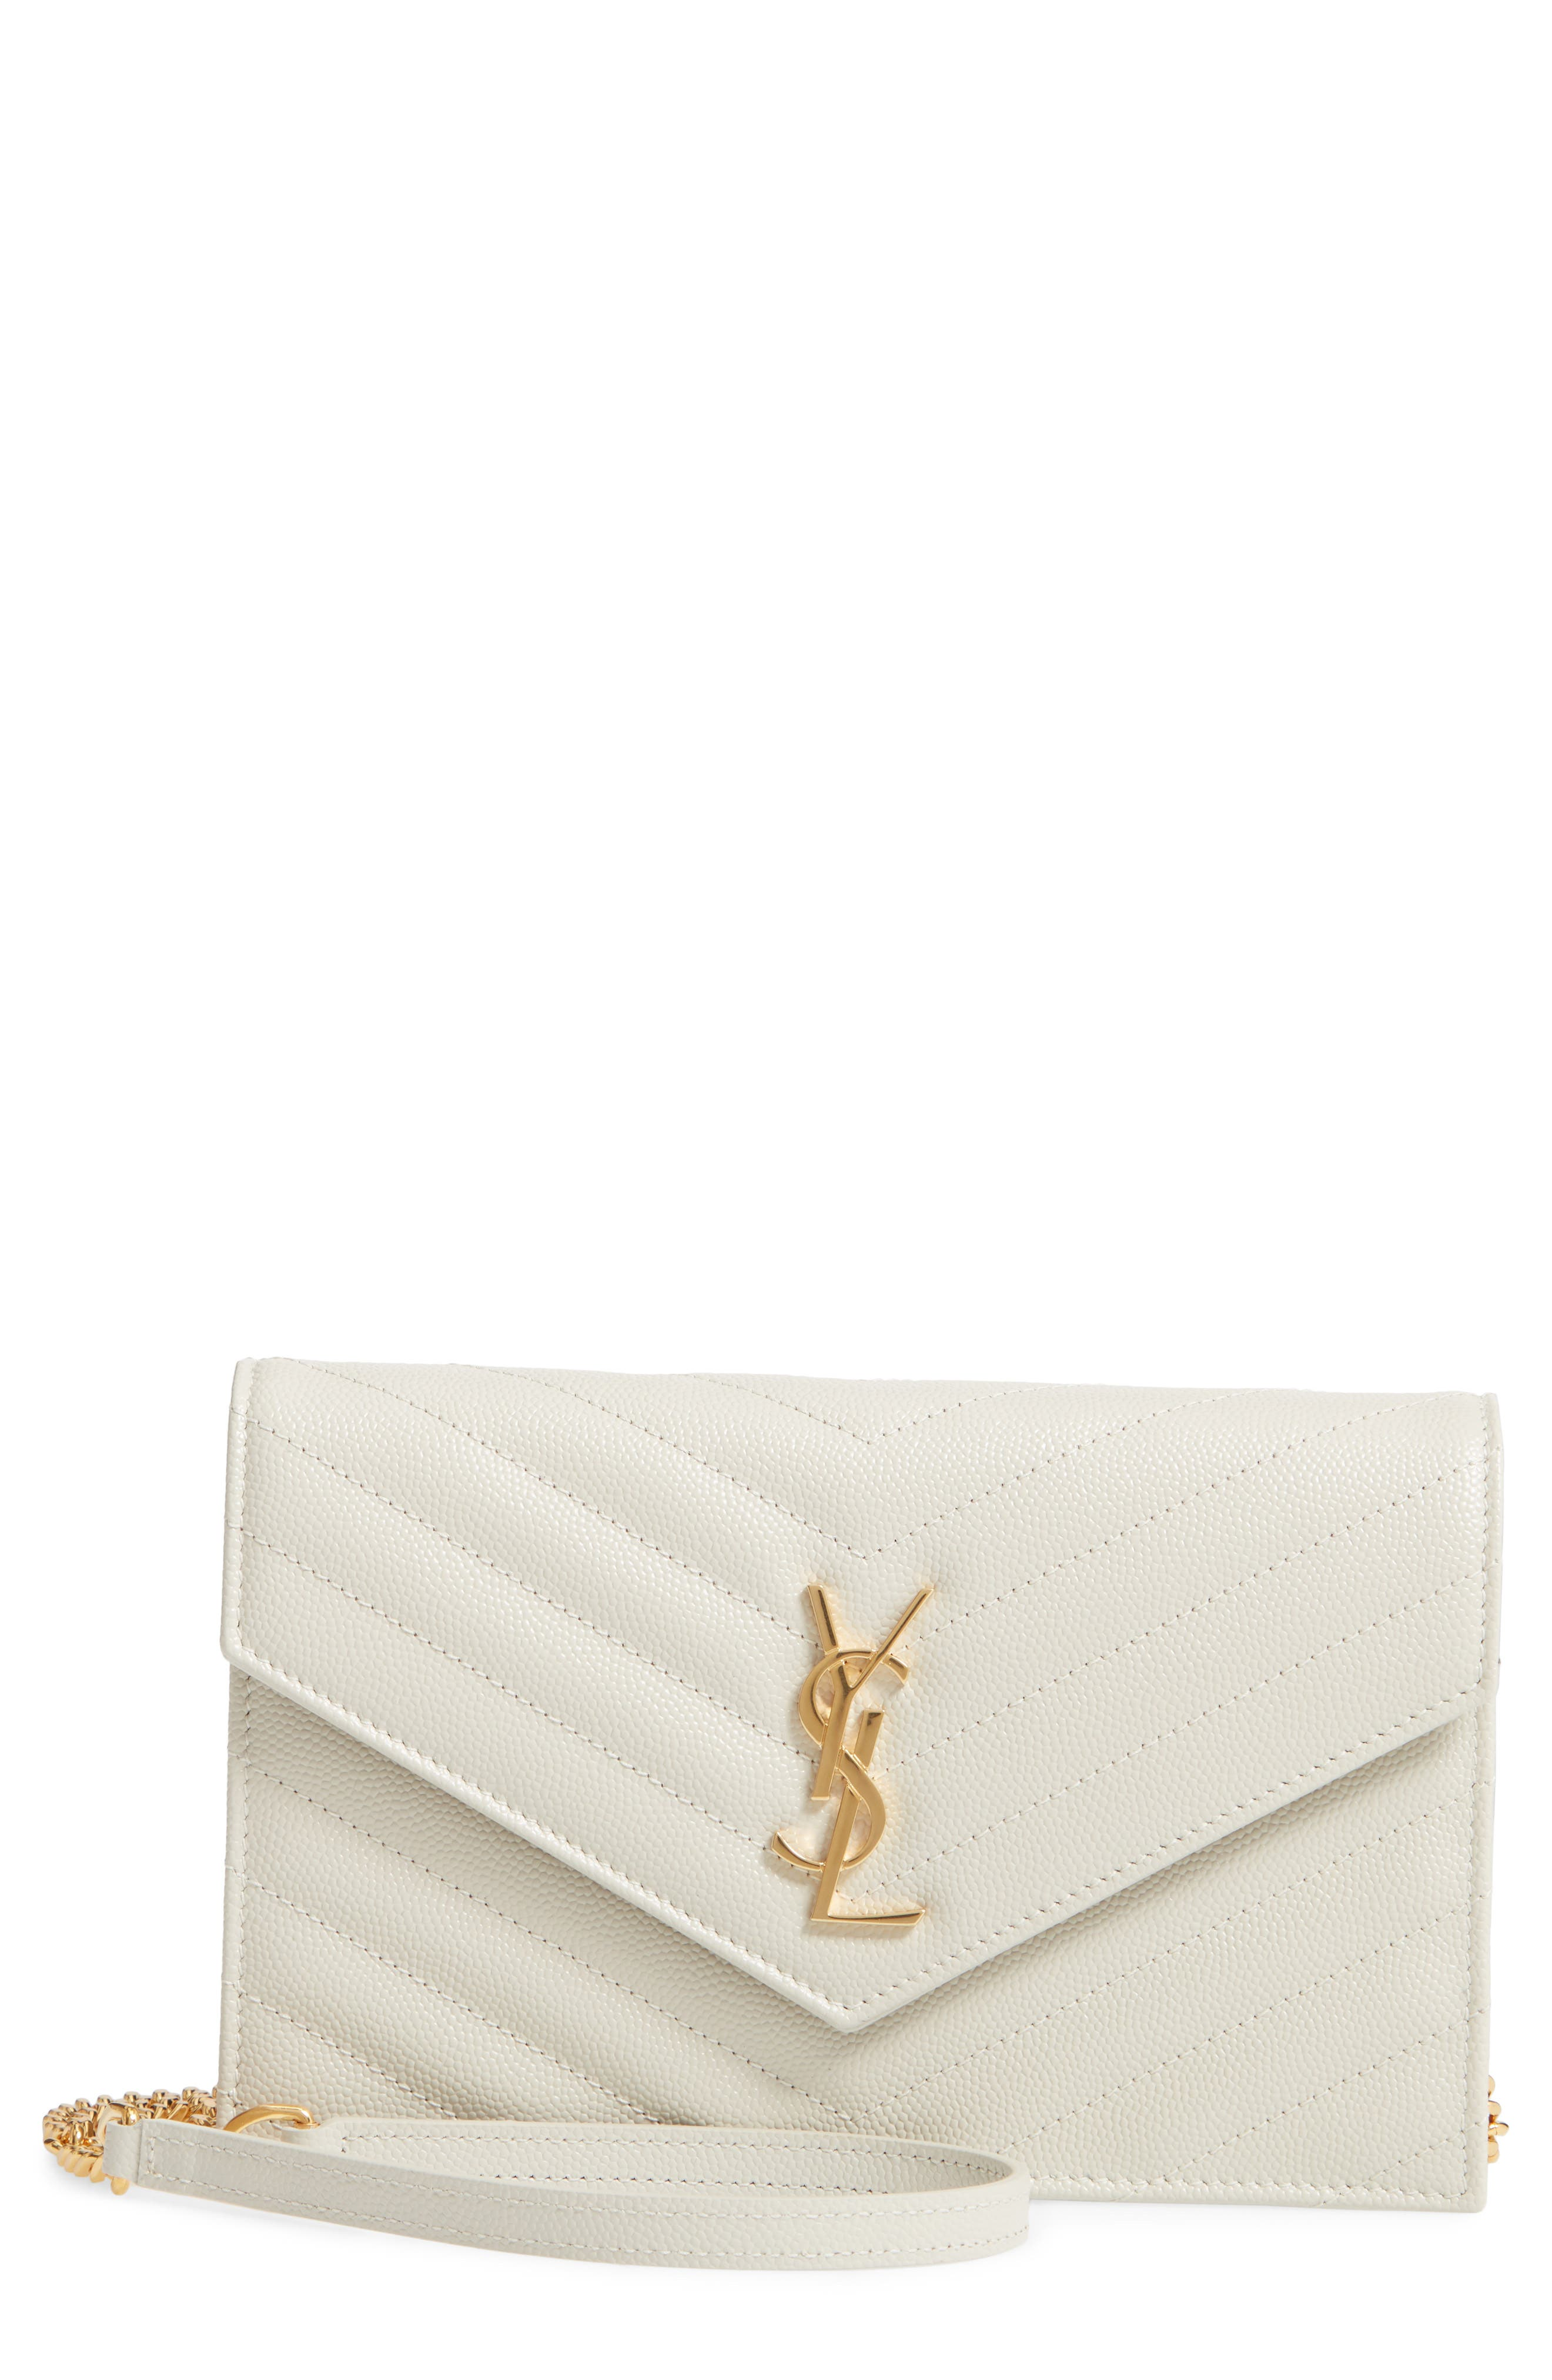 SAINT LAURENT 'Small Mono' Leather Wallet on a Chain, Main, color, CREMASOFT